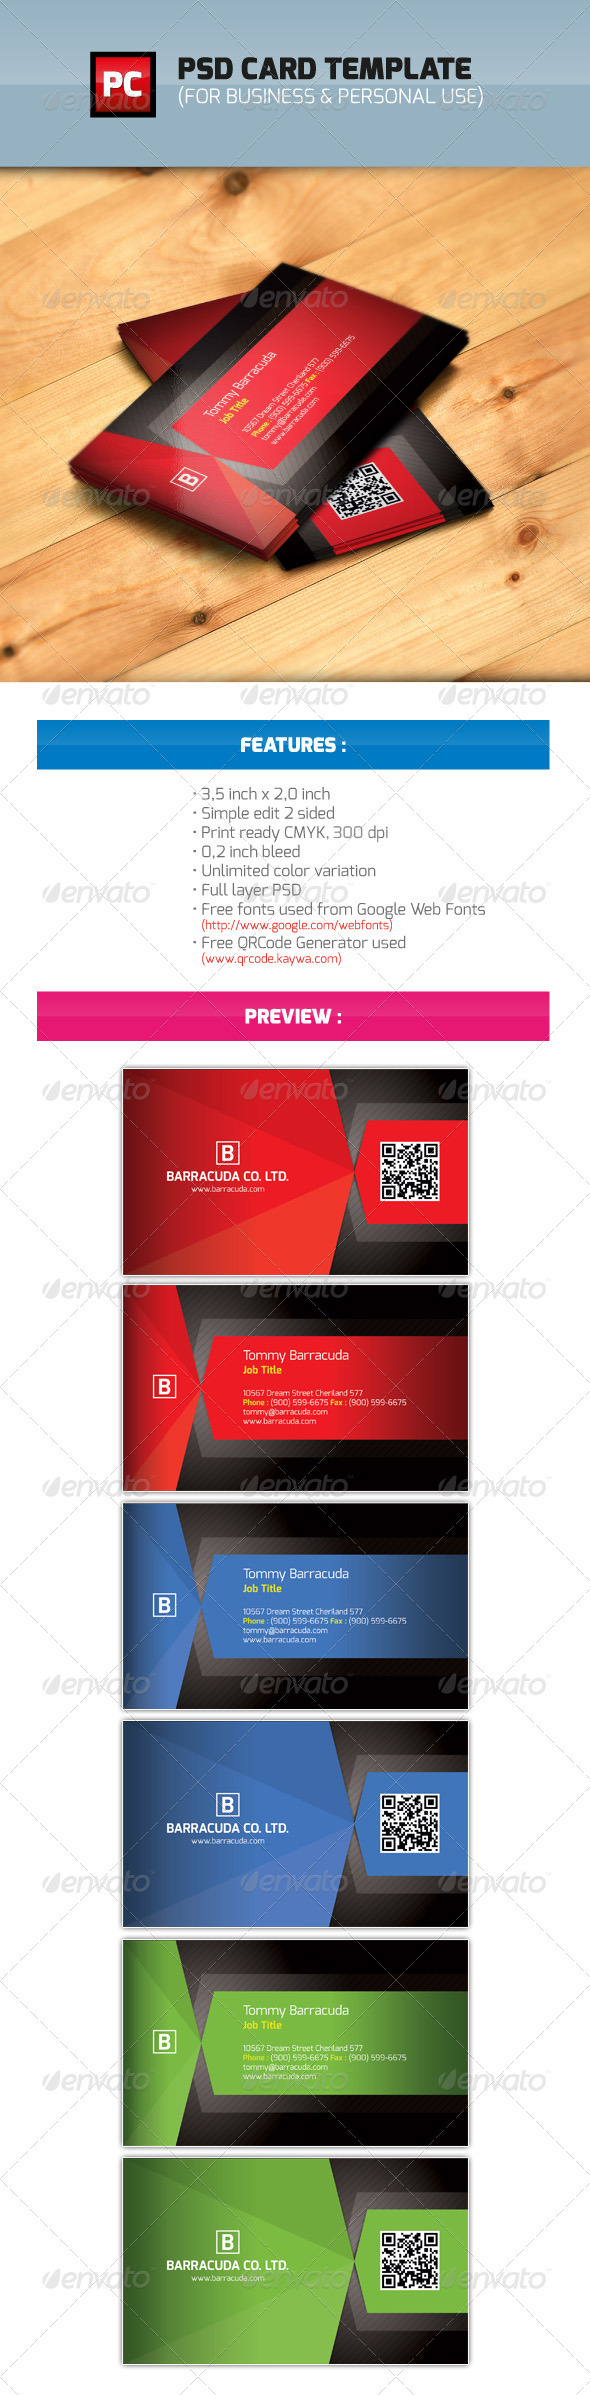 PSD Business & Personal Card Template - Business Cards Print Templates